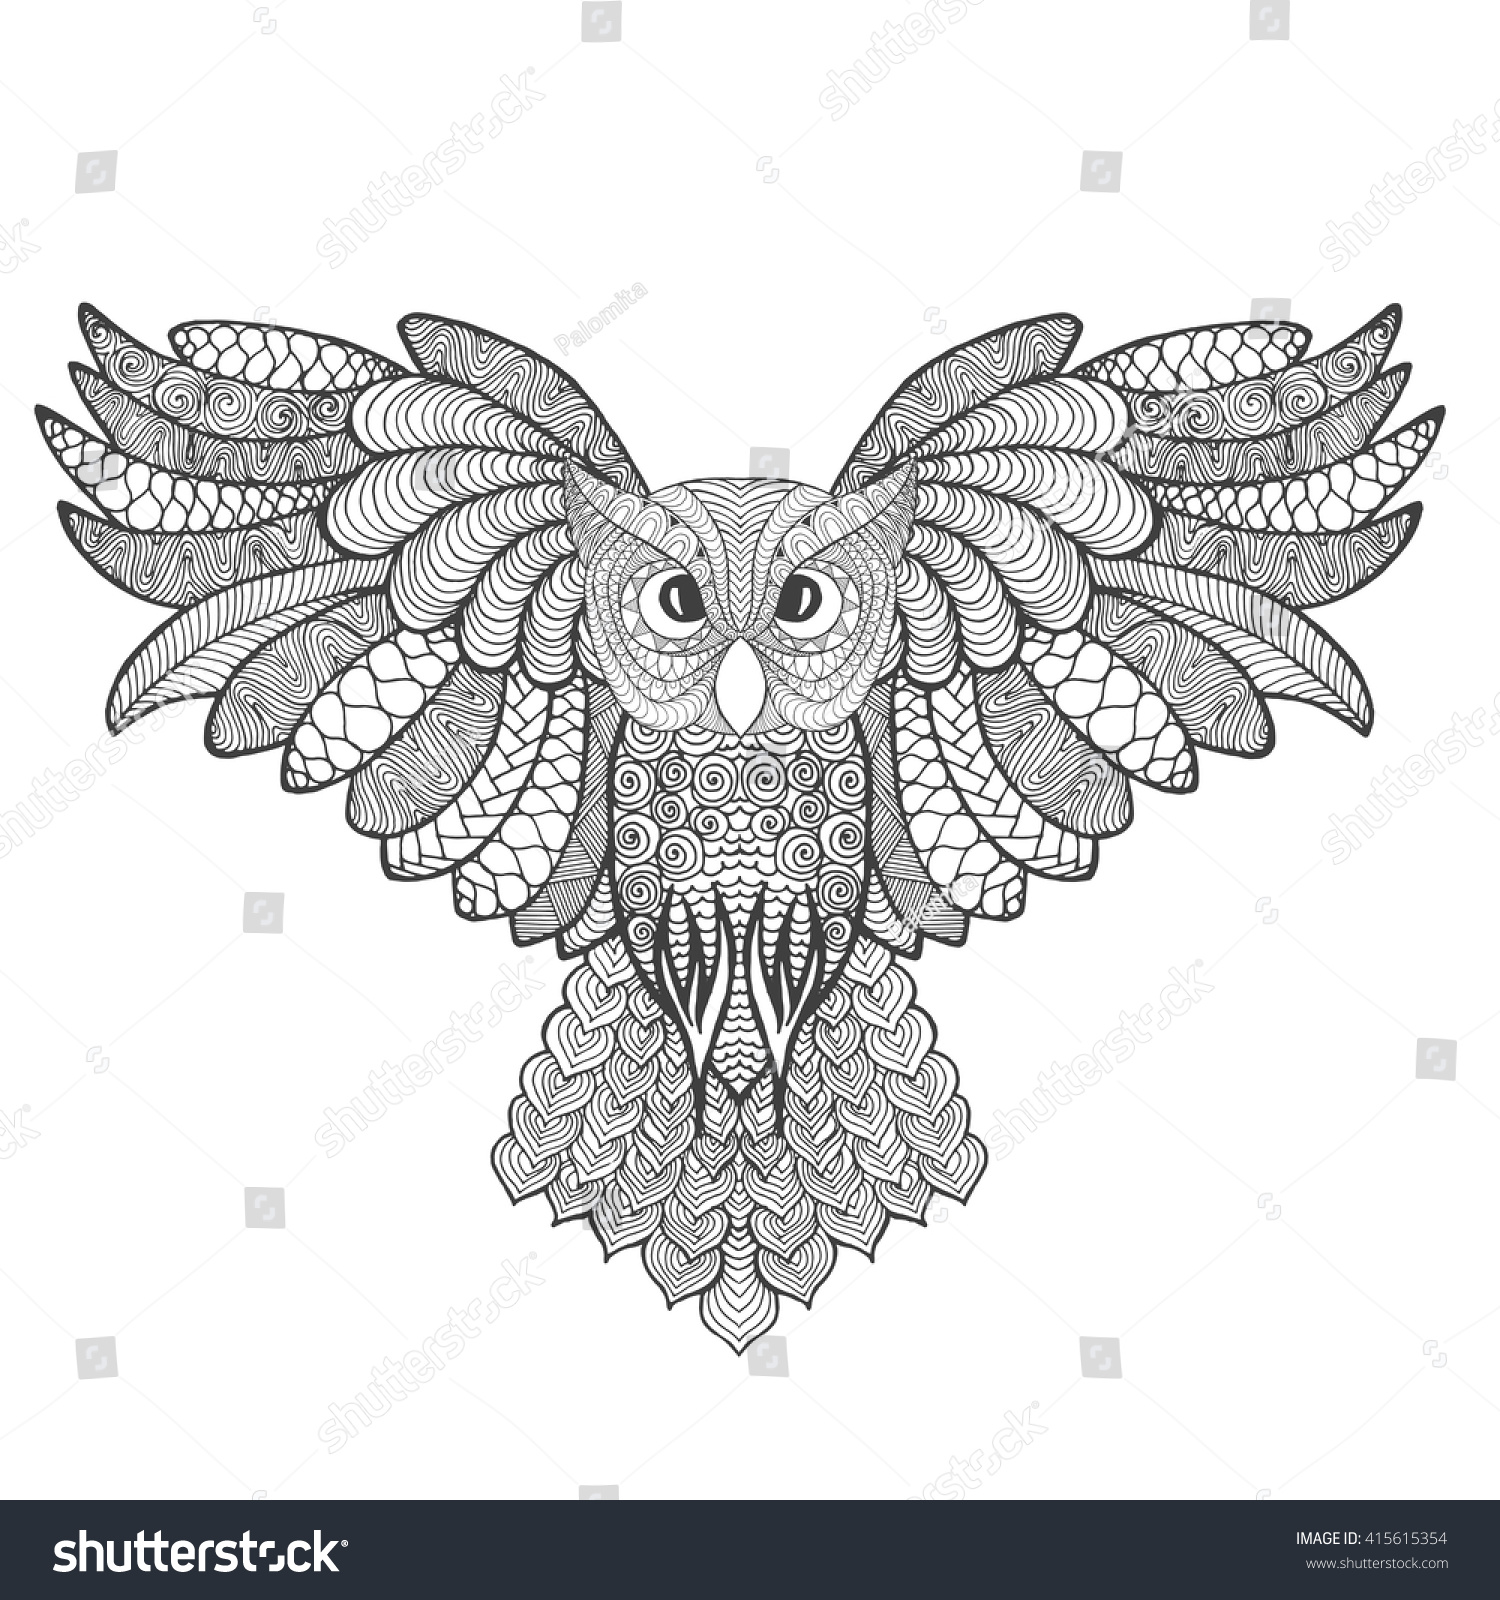 anti stress coloring pages owls - photo#36